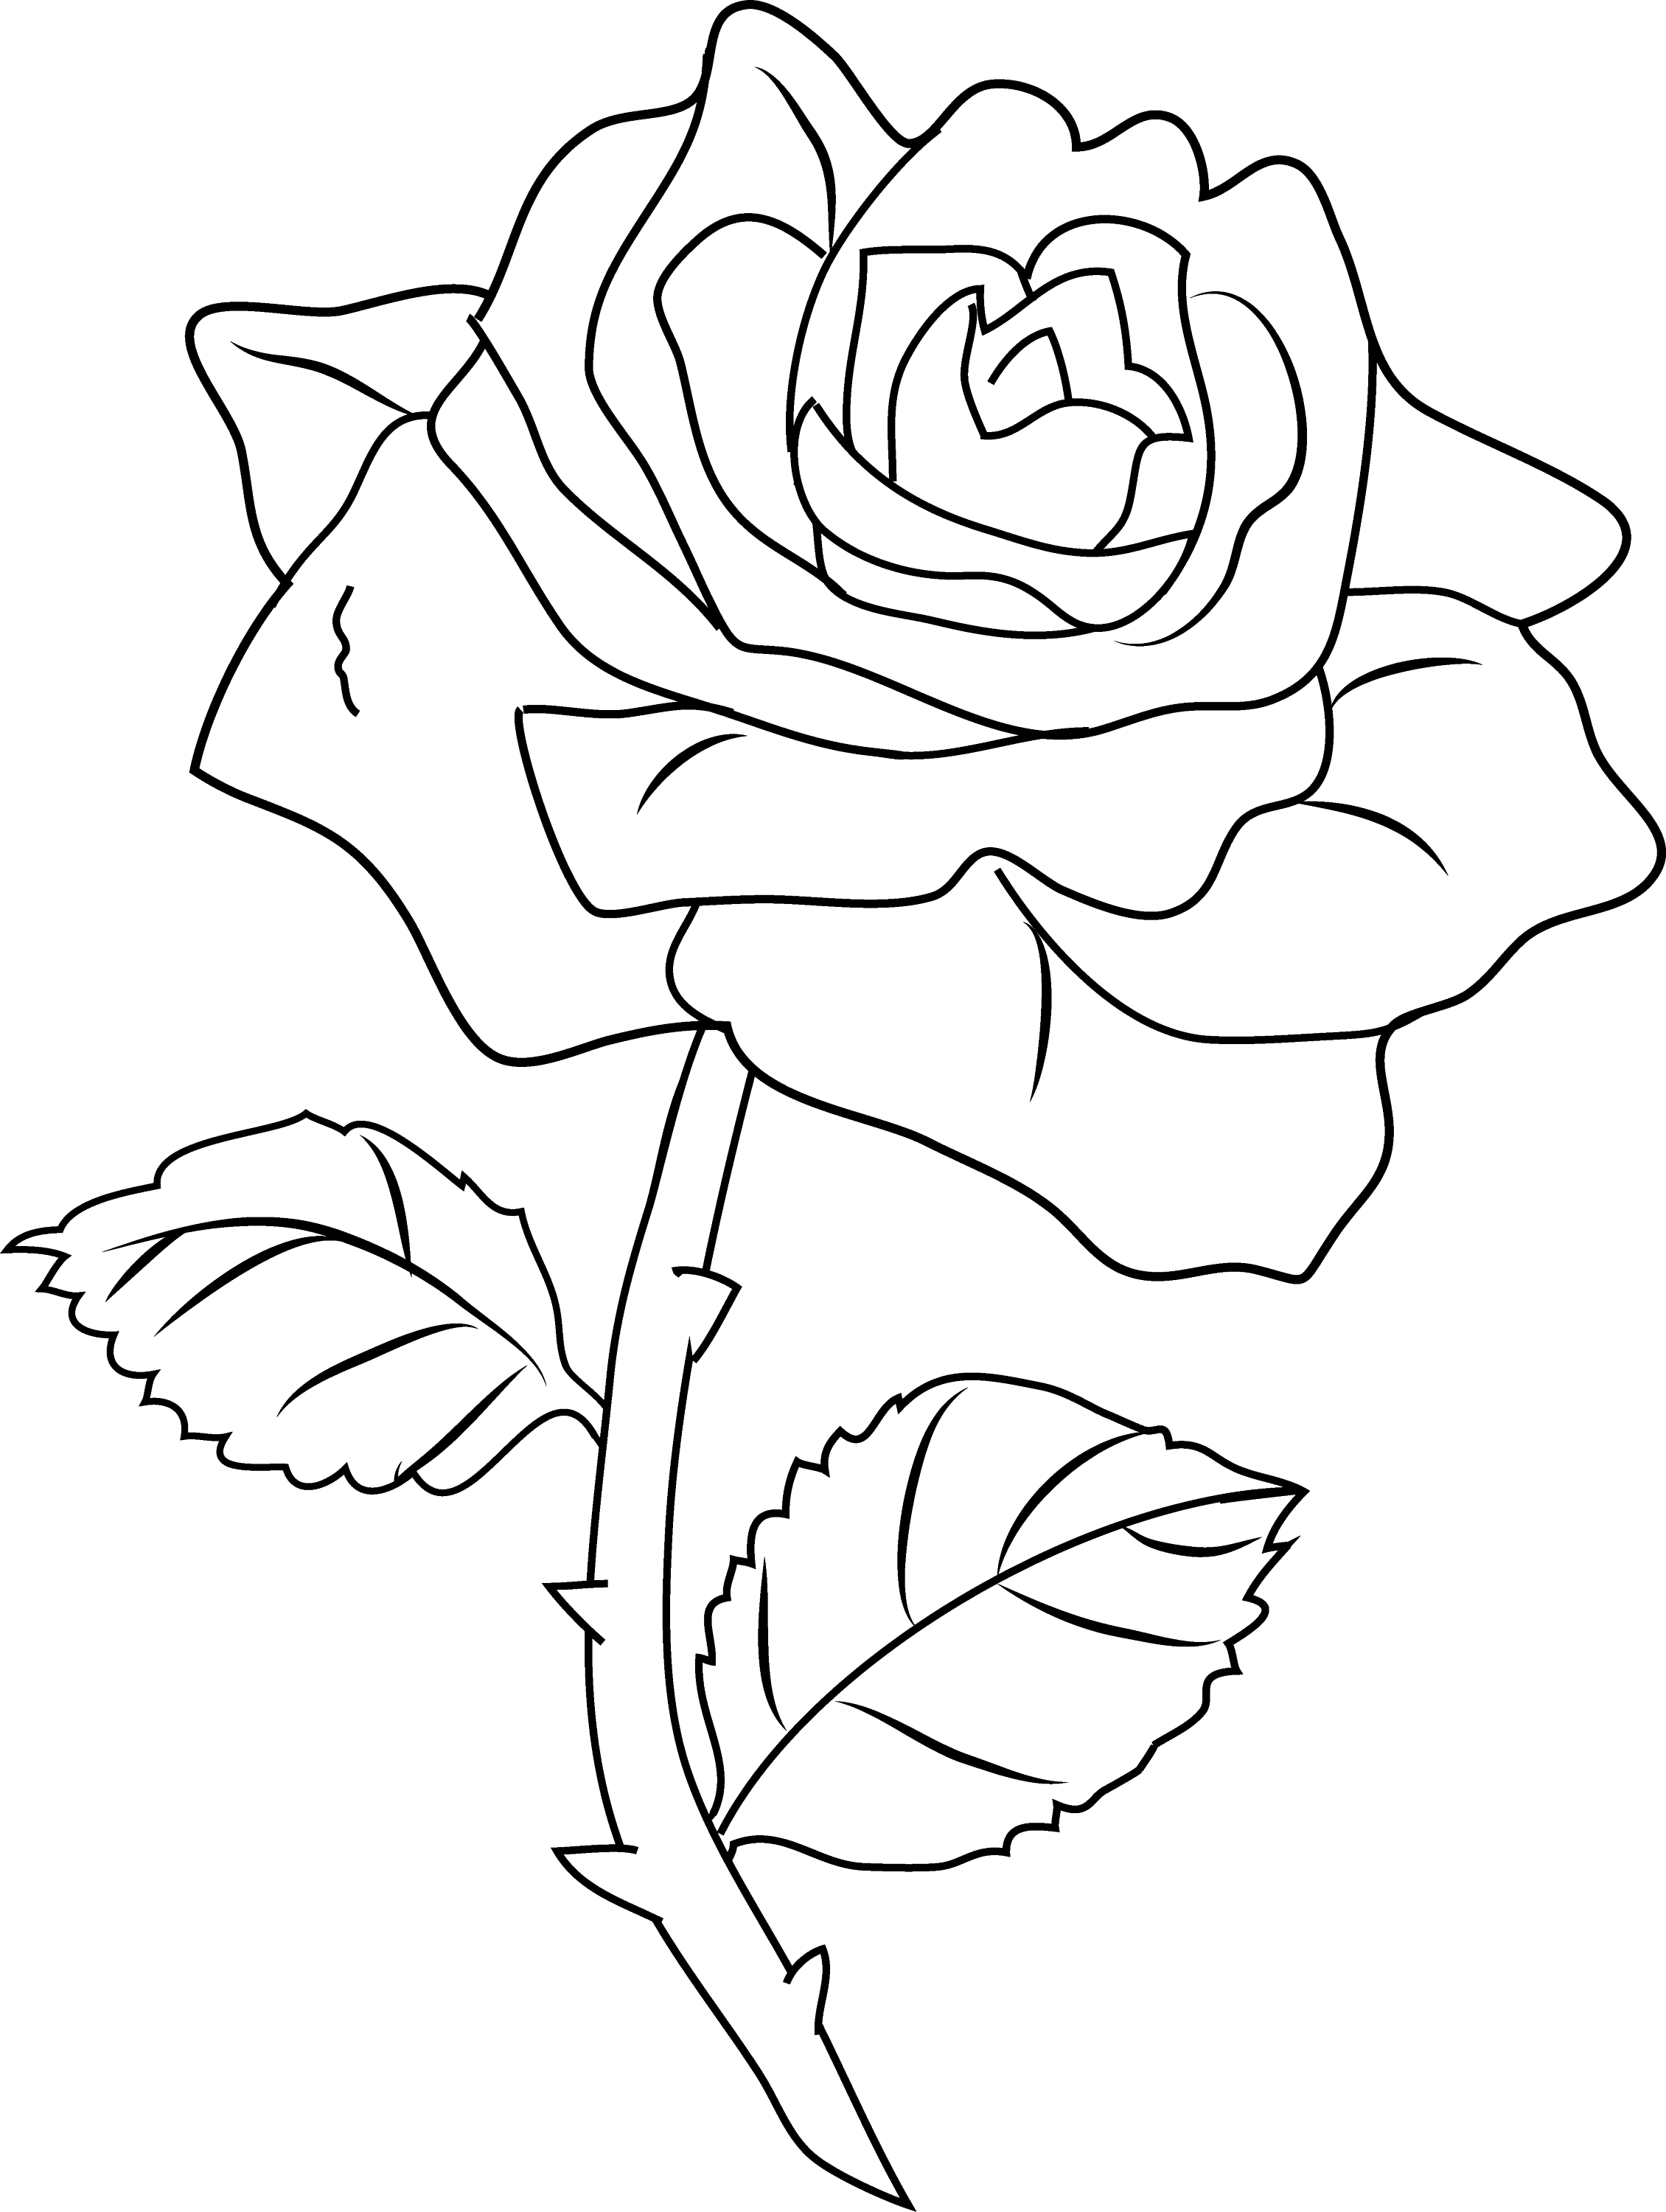 rose flower coloring pictures coloring pages rose flower coloring pages coloring flower rose pictures